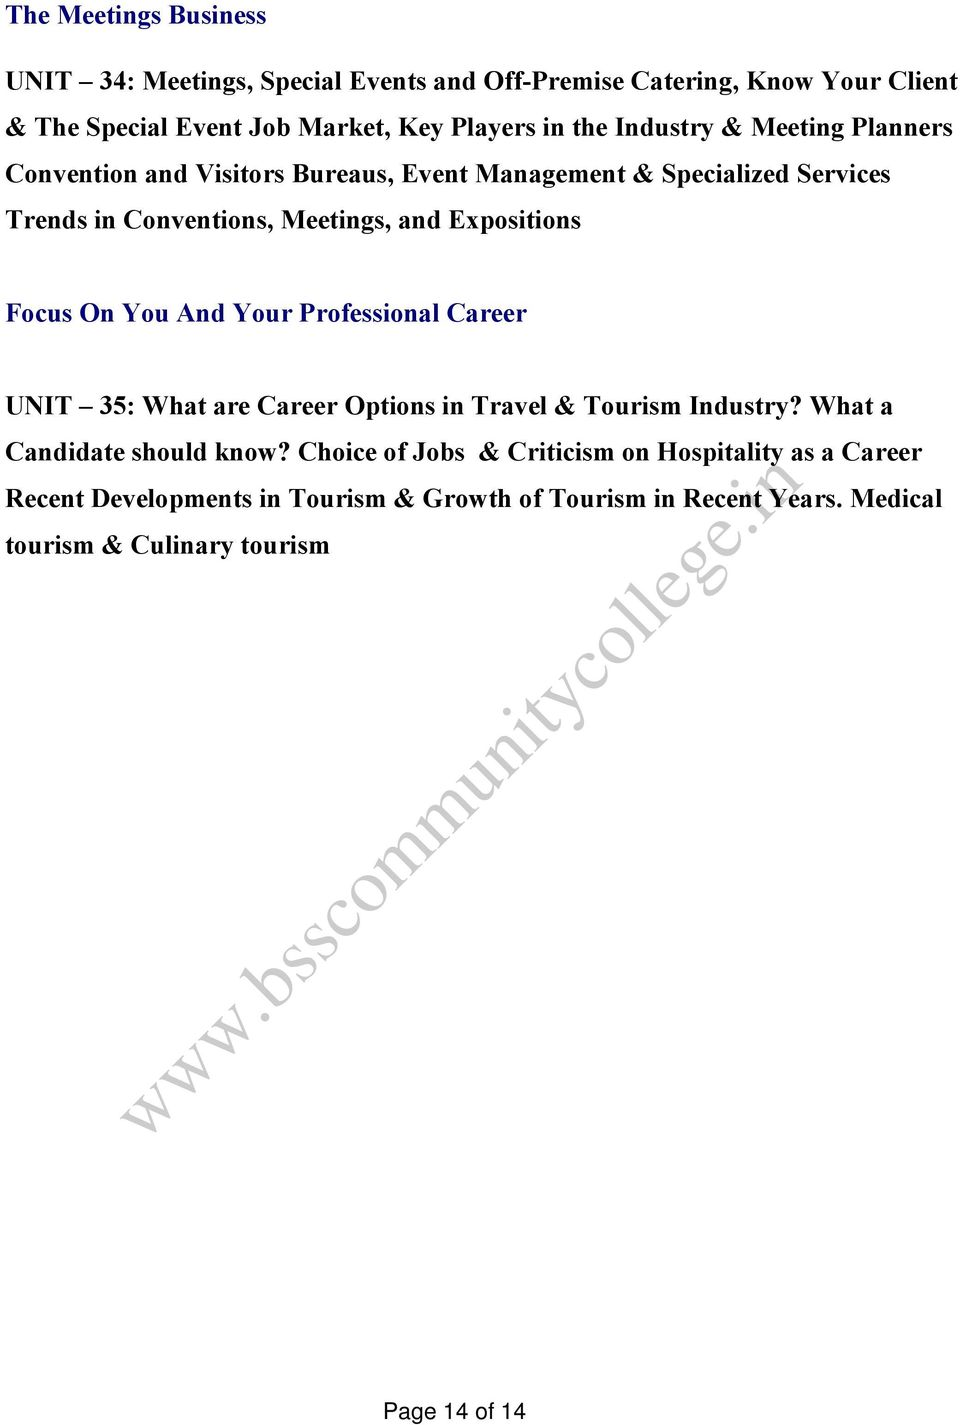 Focus On You And Your Professional Career UNIT 35: What are Career Options in Travel & Tourism Industry? What a Candidate should know?